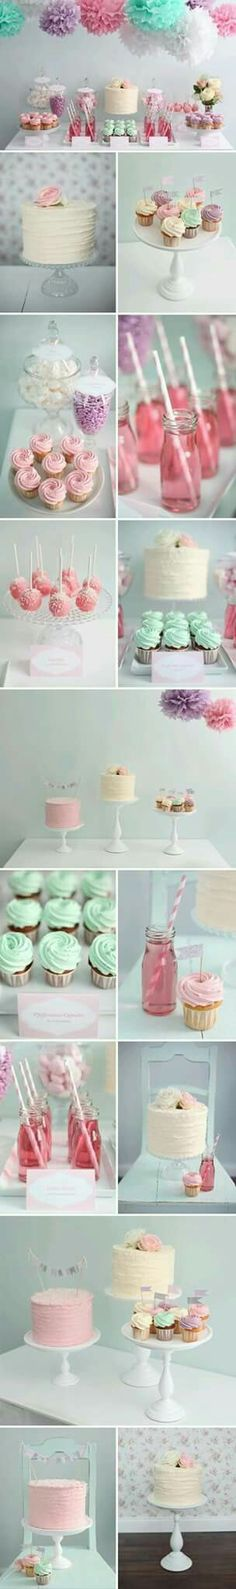 Best cupcakes ideas for baby shower girl birthday parties Ideas Baby Shower, Girl Shower, Shower Cake, Shower Party, Baby Birthday, First Birthday Parties, 1st Birthdays, Birthday Cupcakes, Birthday Decorations